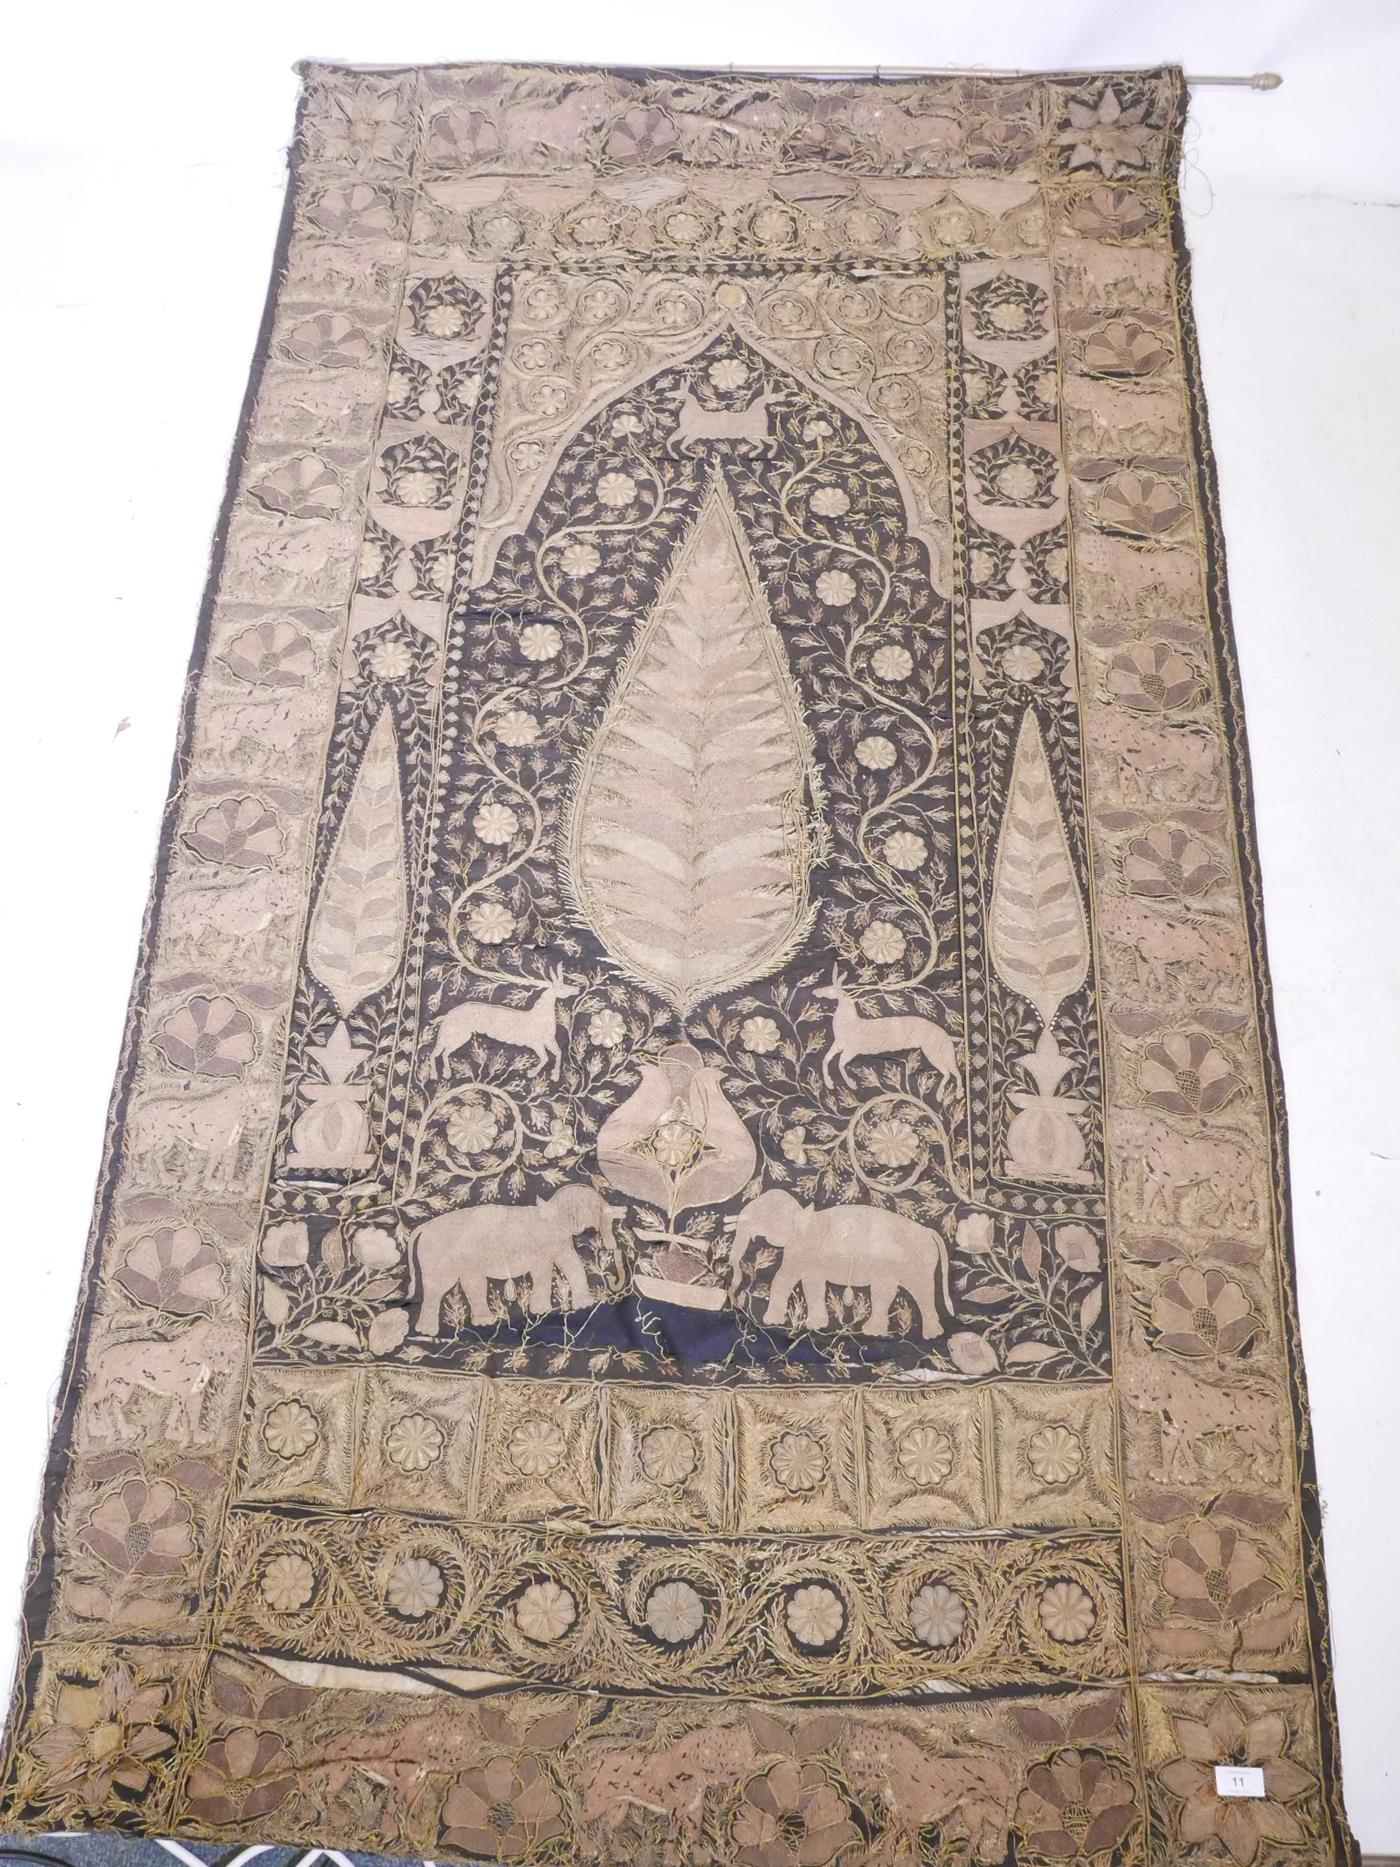 Lot 11 - An Indian gilt thread embroidered wall hanging with rosettes, elephants and tiger decoration, A/F